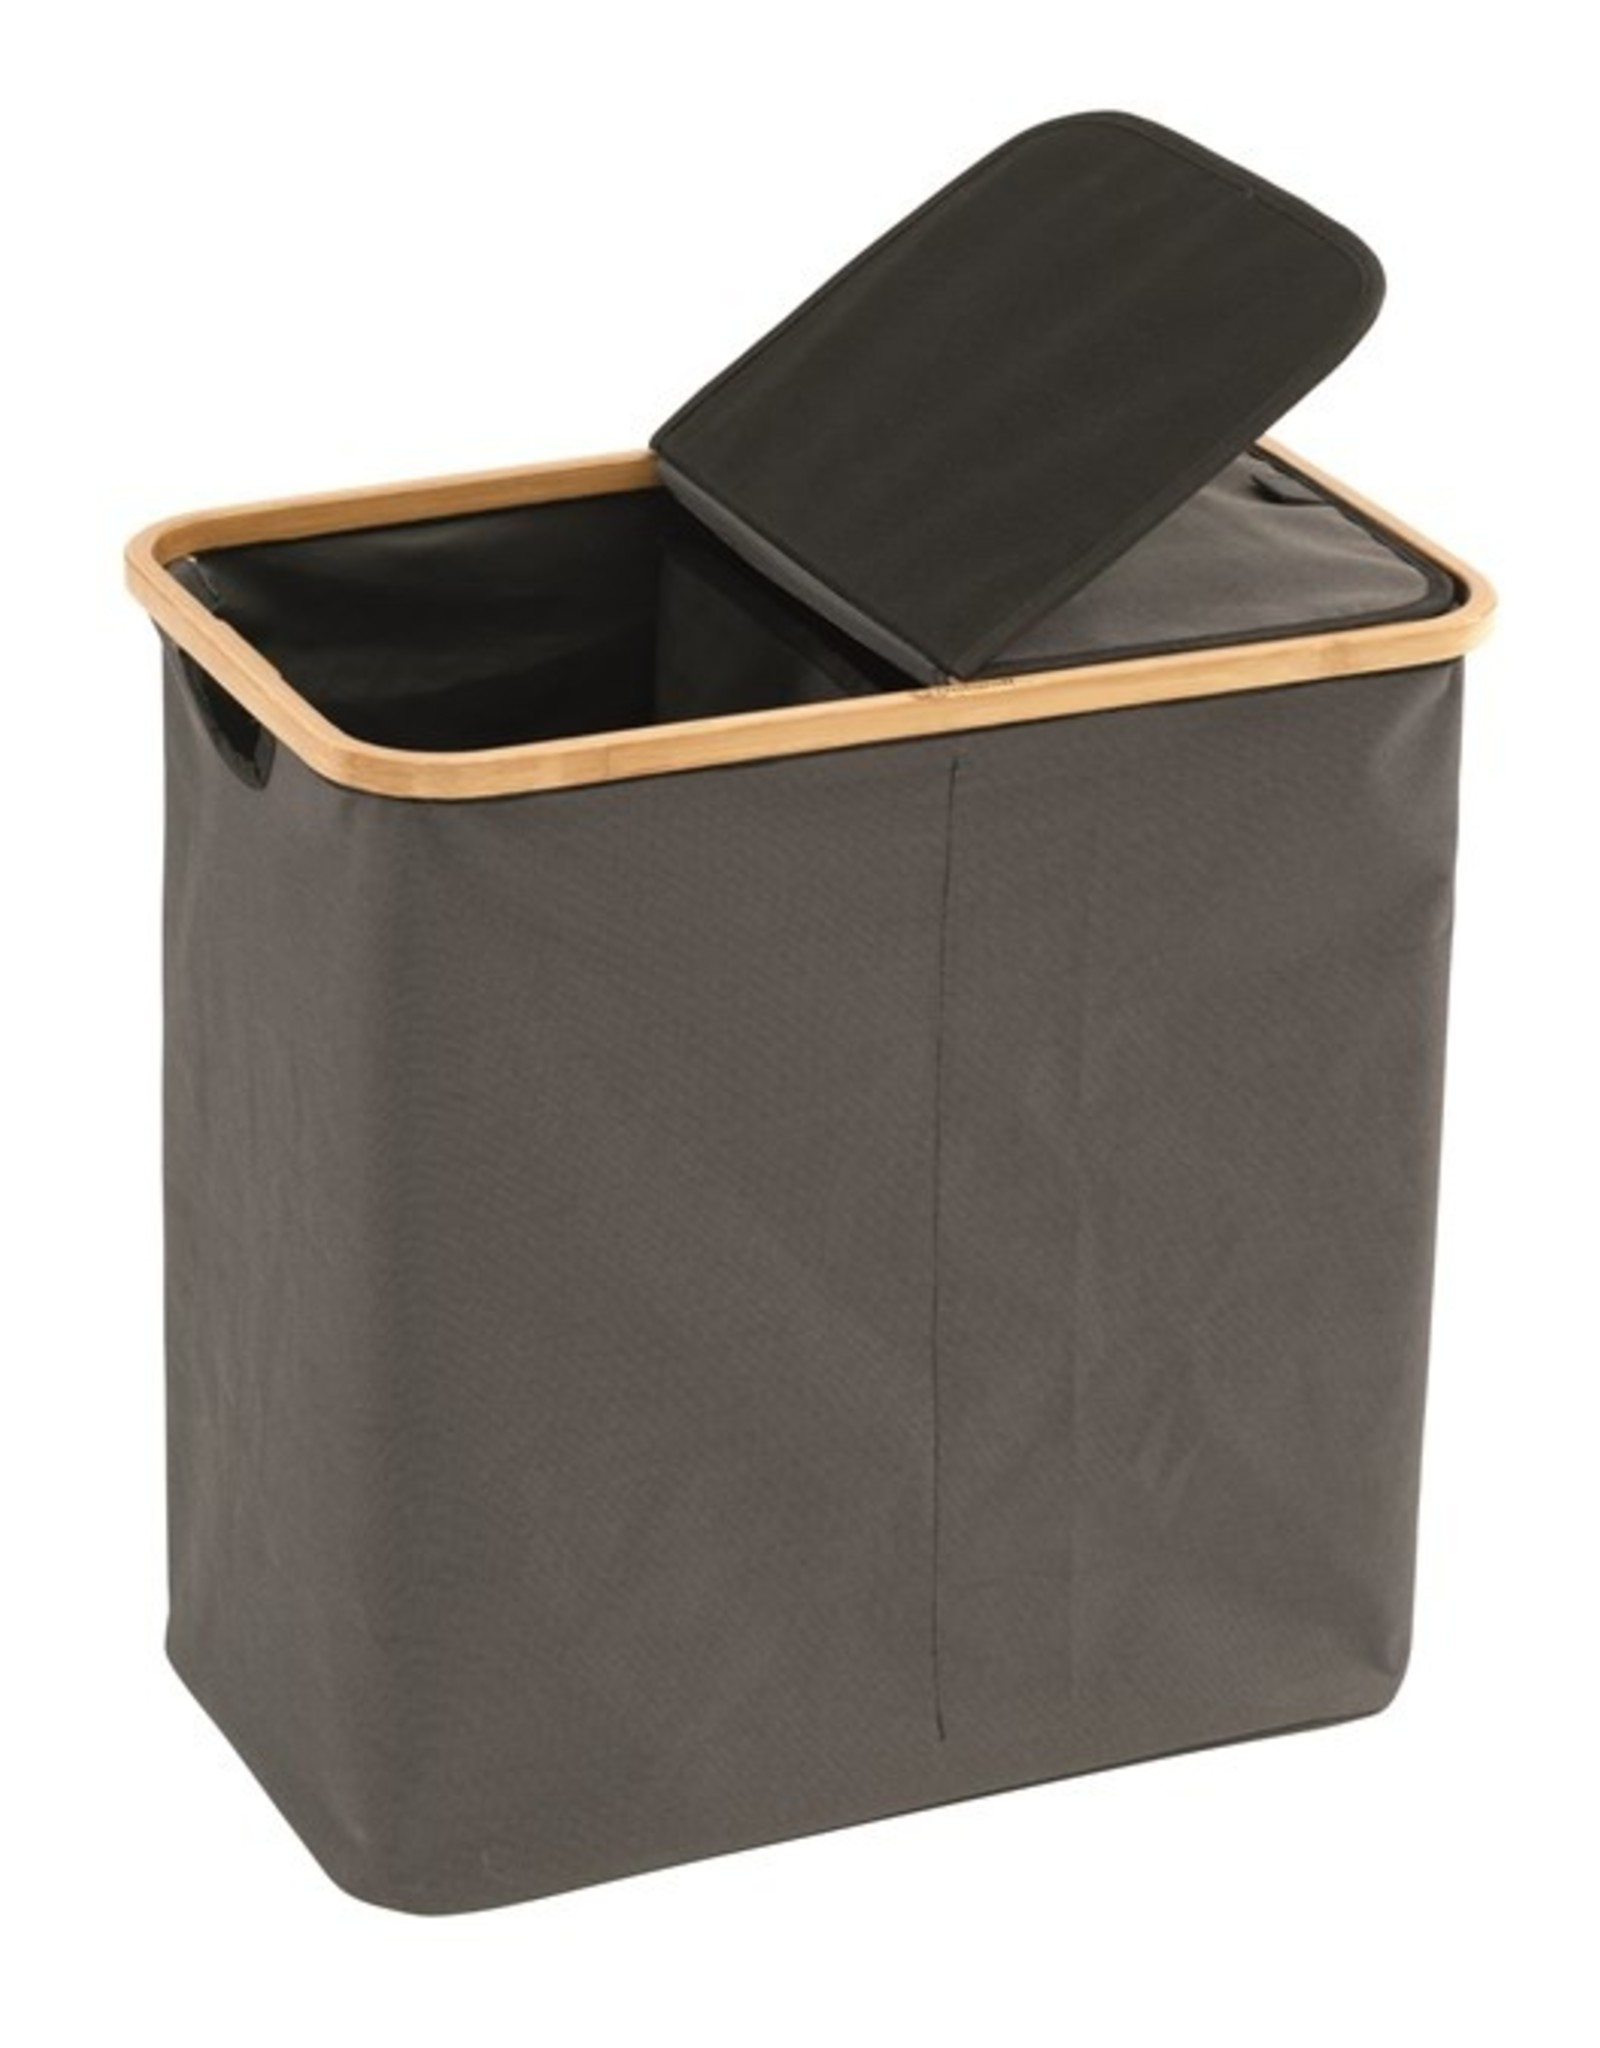 Outwell Padres box with lid